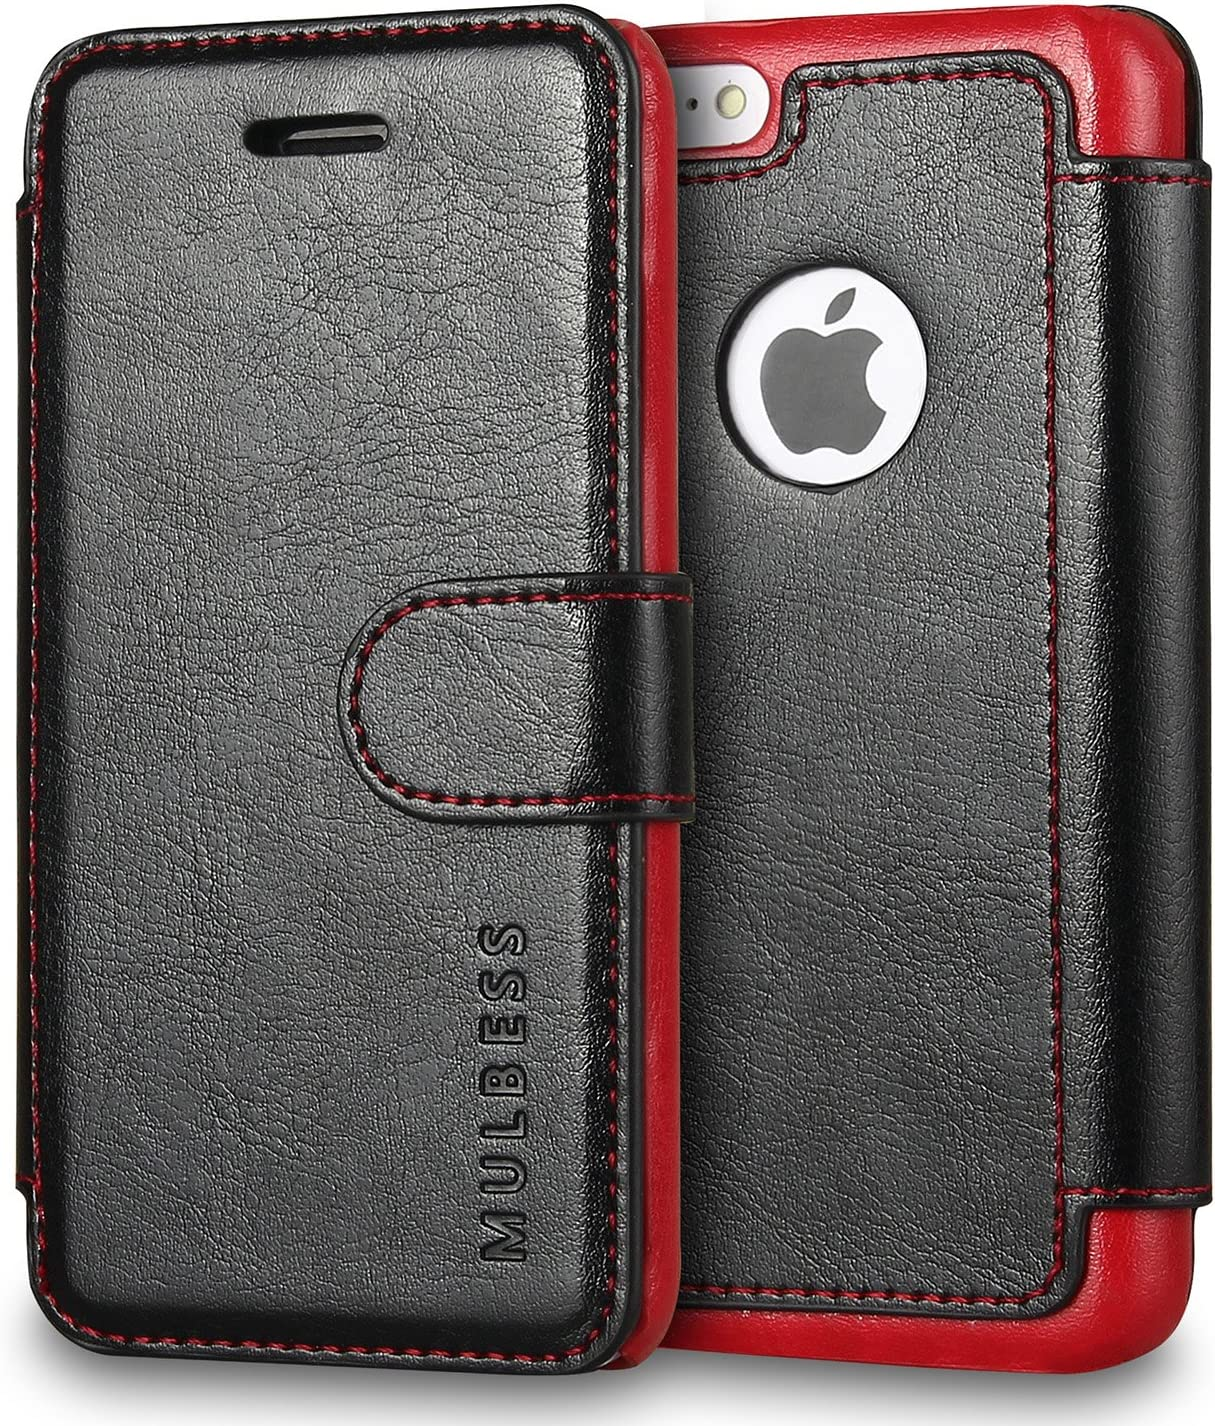 Mulbess Layered iPhone 5c Case Wallet,Folio Flip Leather Phone Case for iPhone 5c Cover, Black